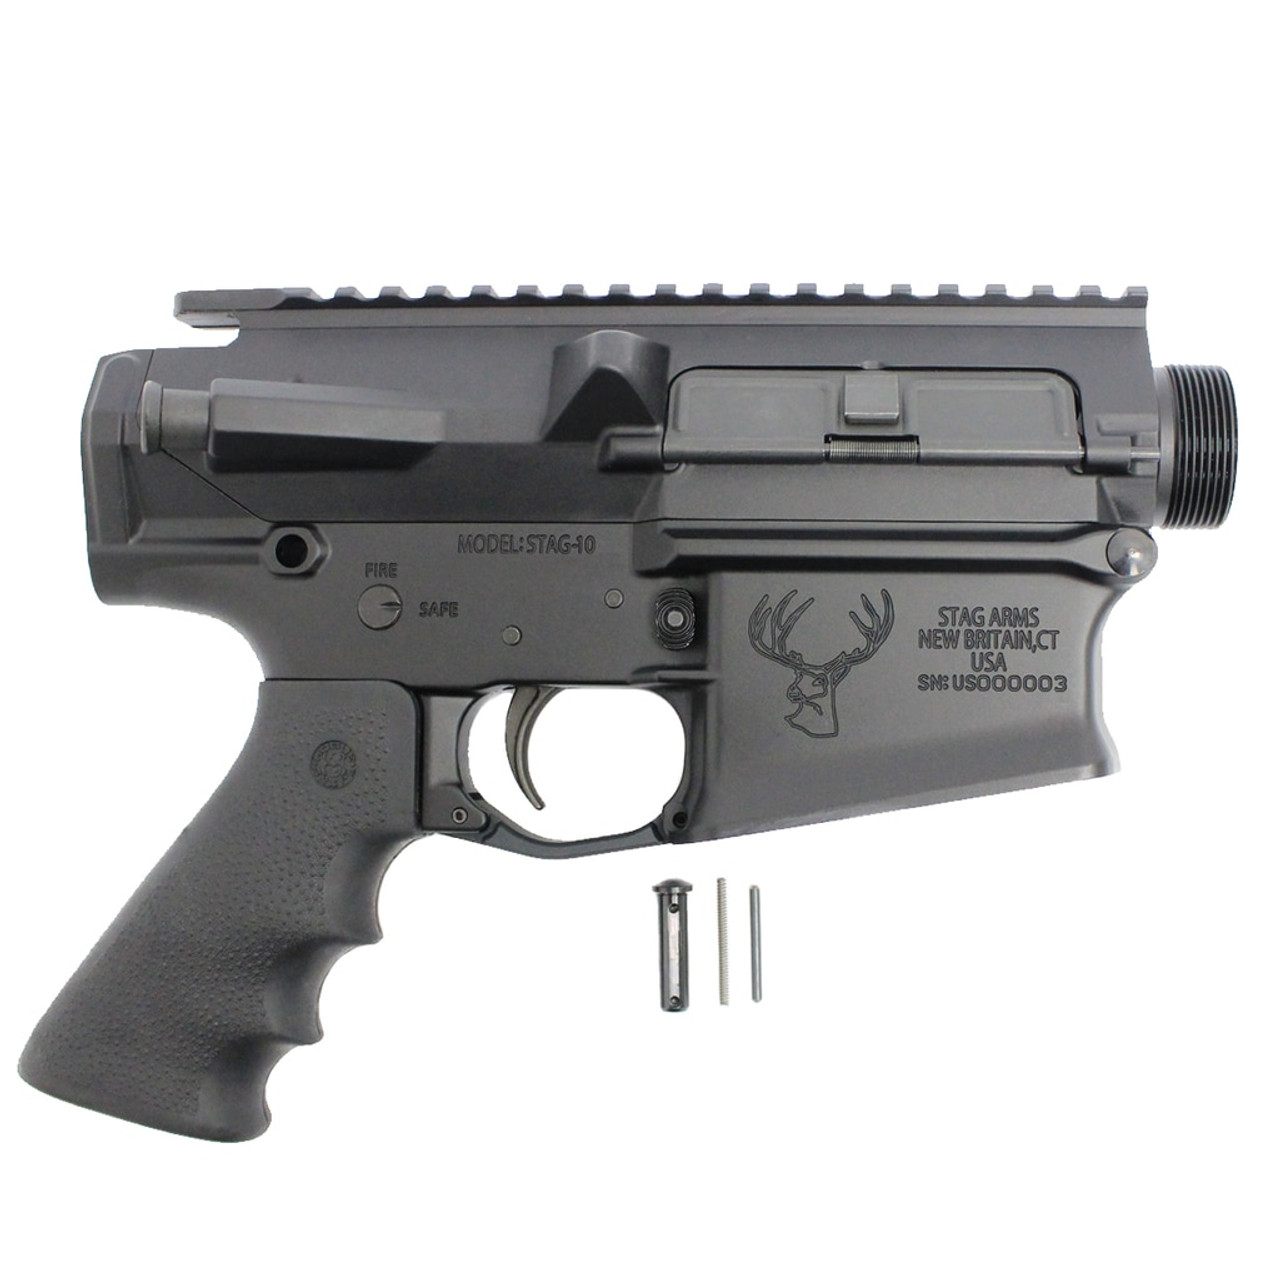 Stag 10 Upper / Lower Combo (Non-Restricted)